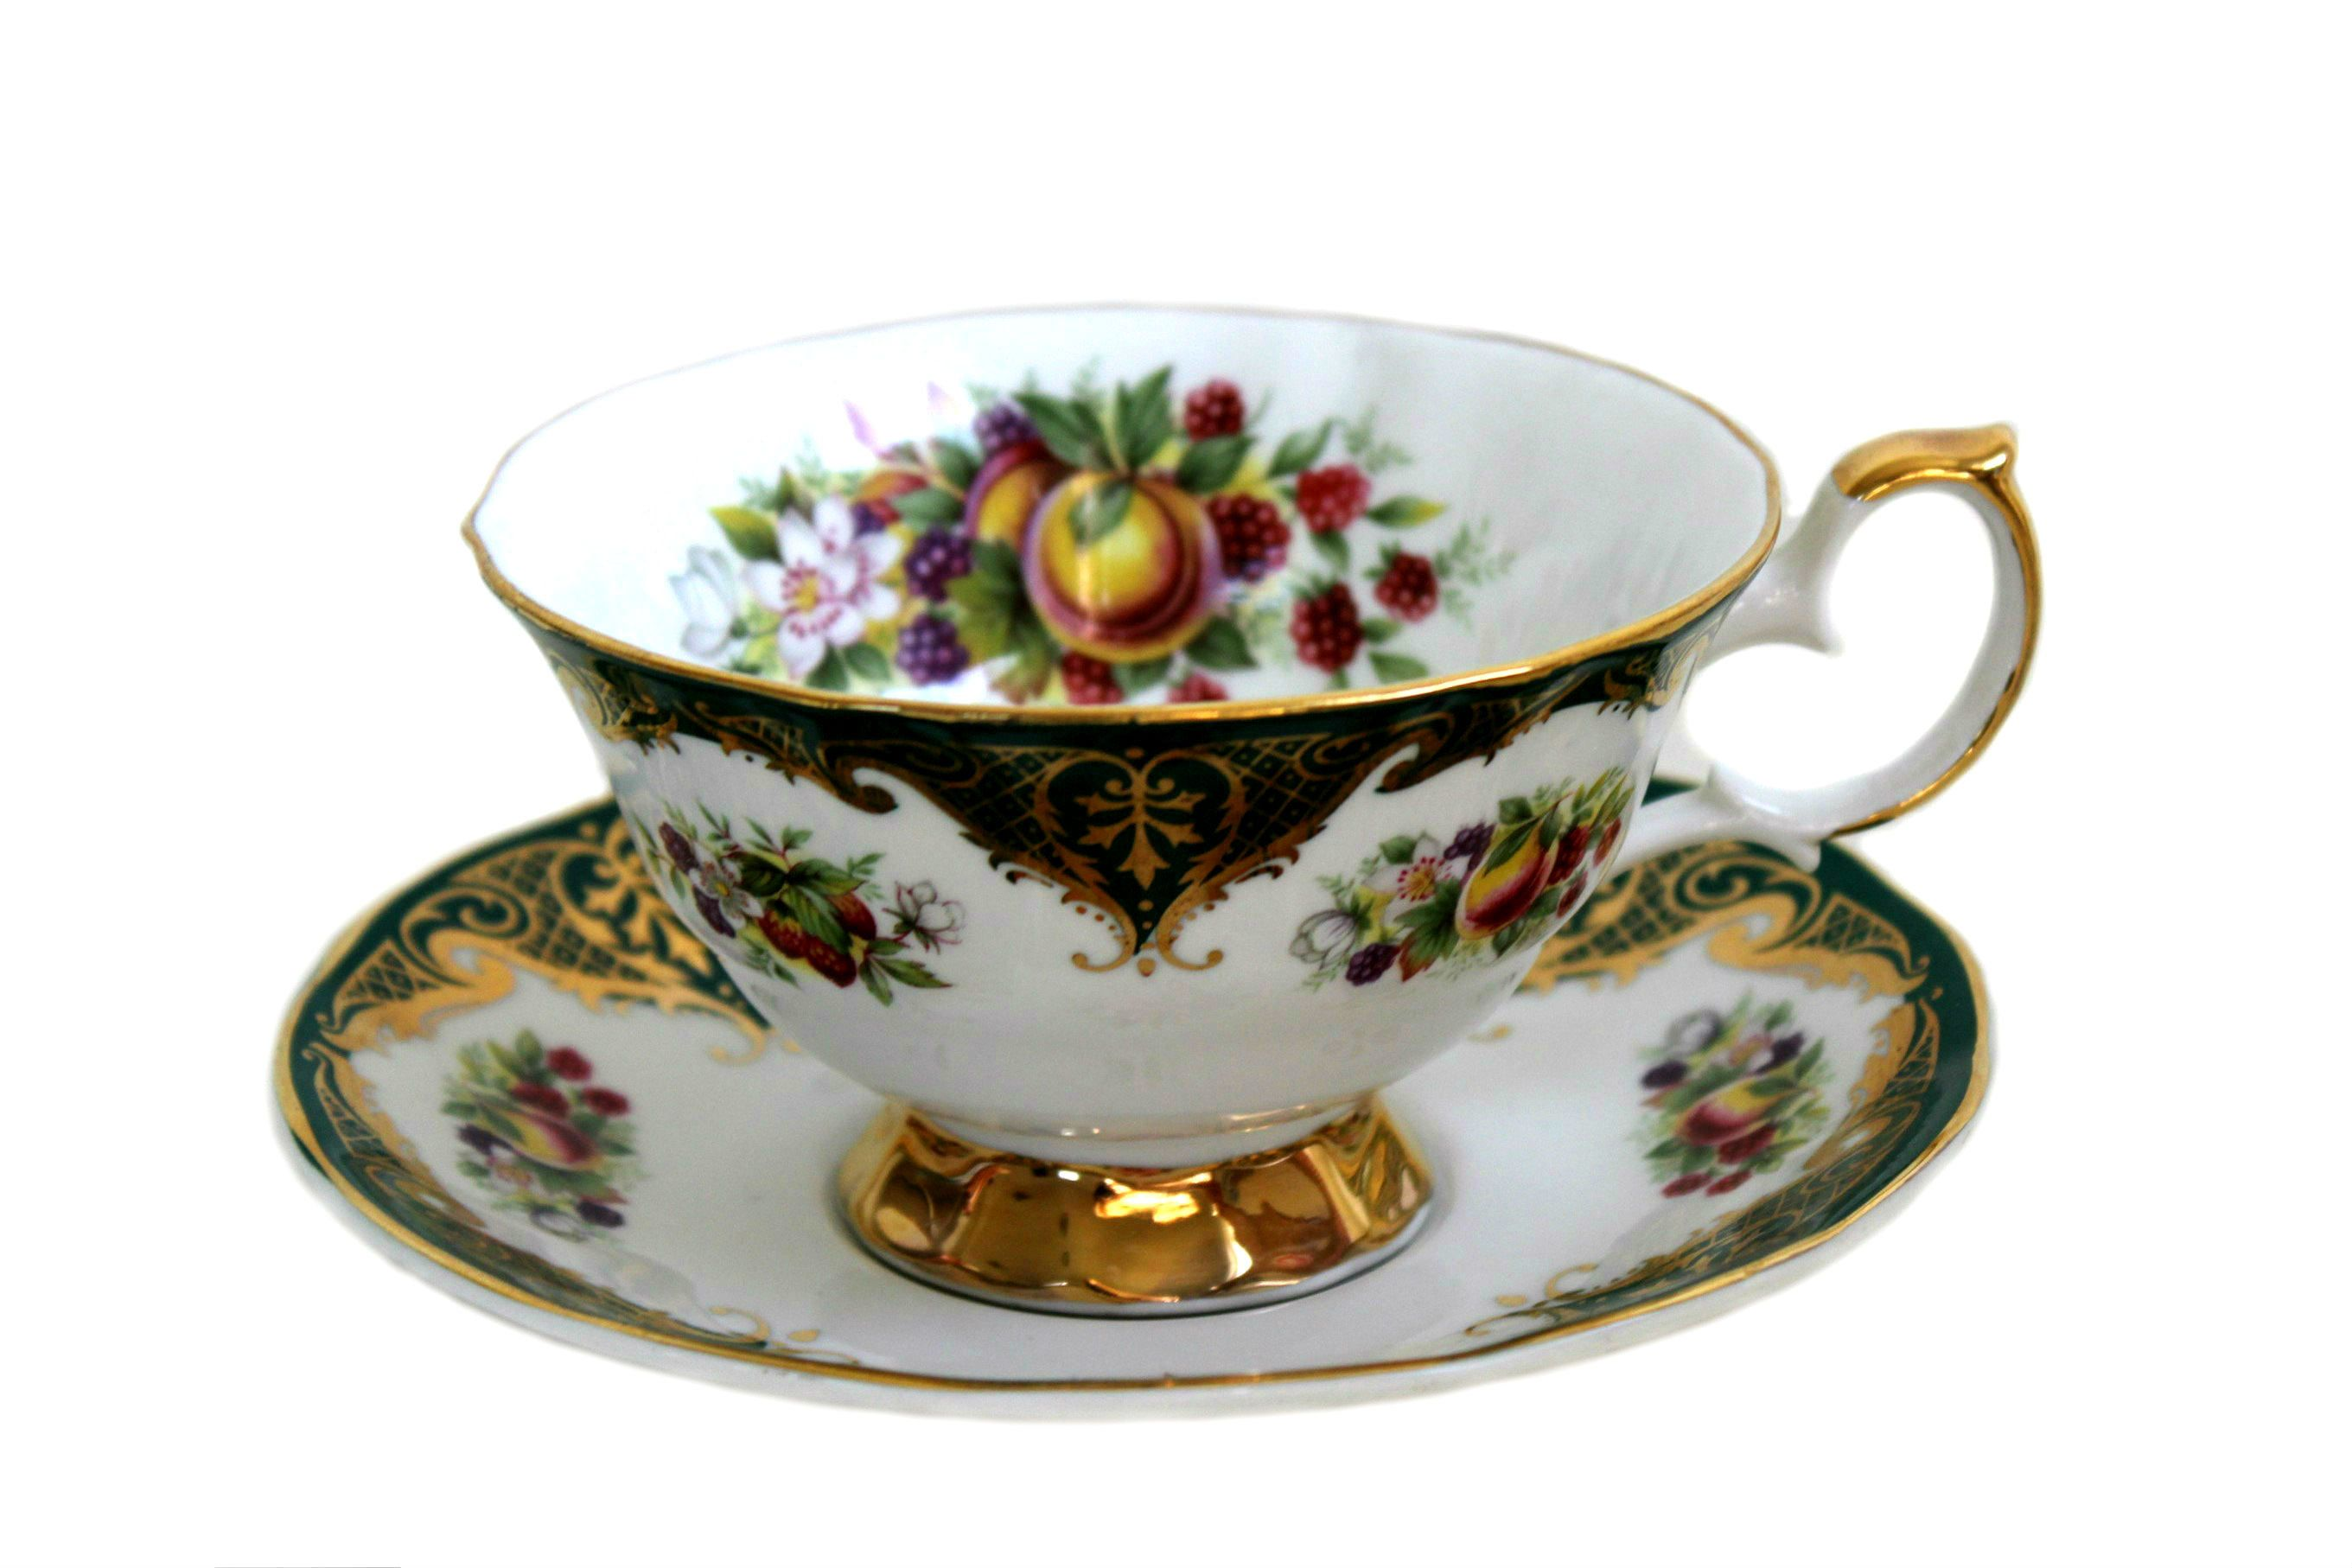 Elizabethan staffordshire teacup and saucer green gold